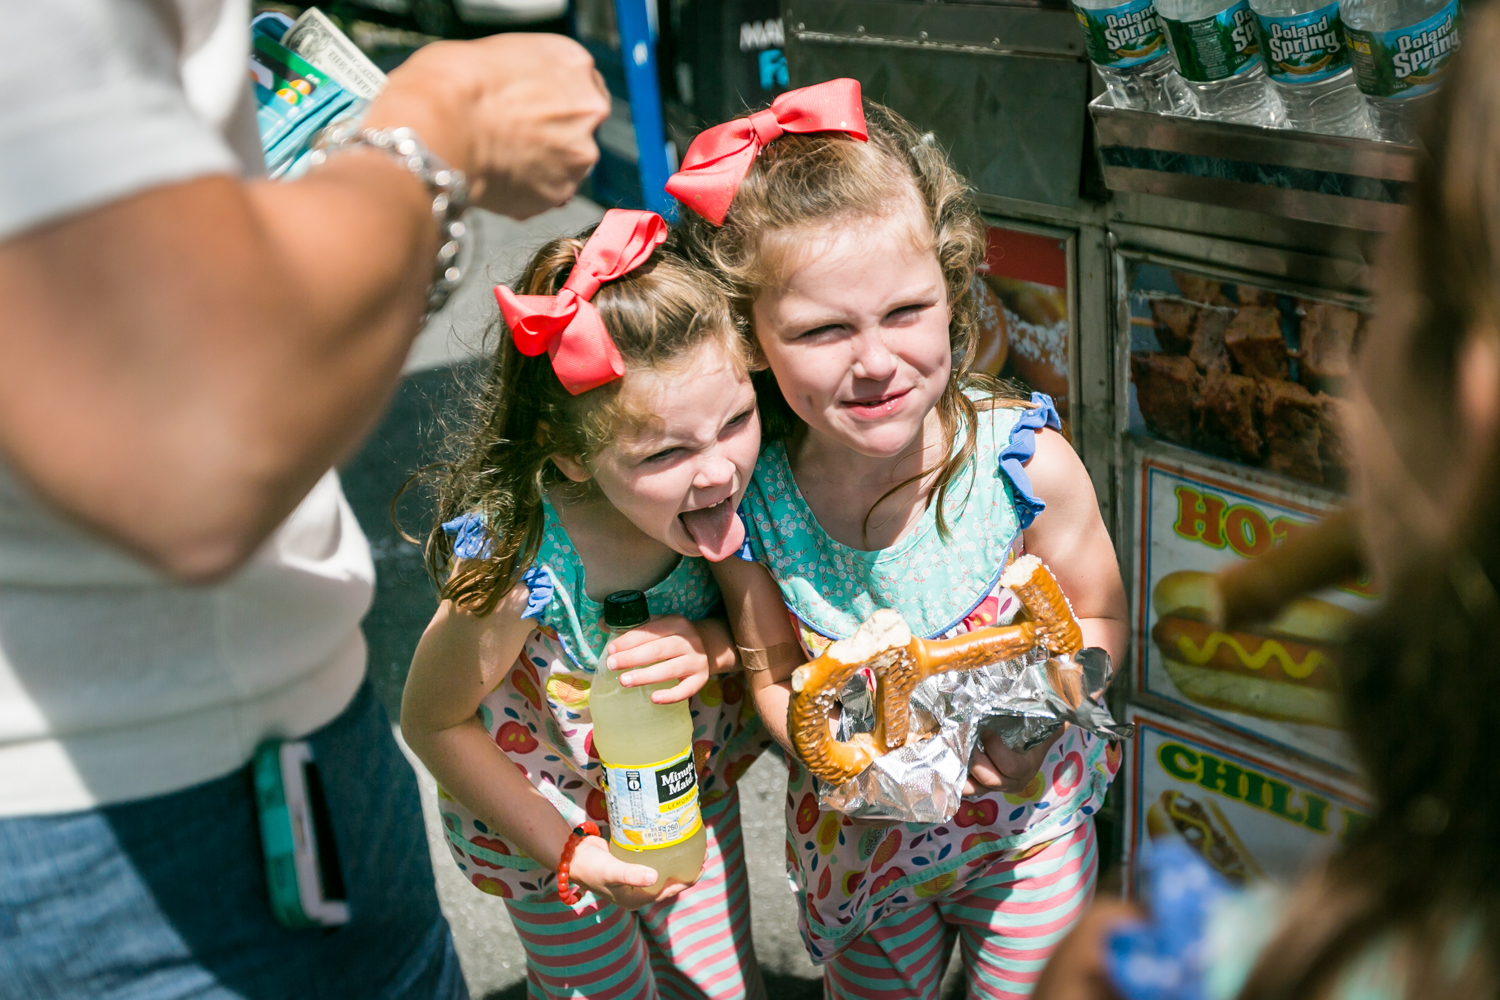 Two little girls making funny faces and holding a pretzel